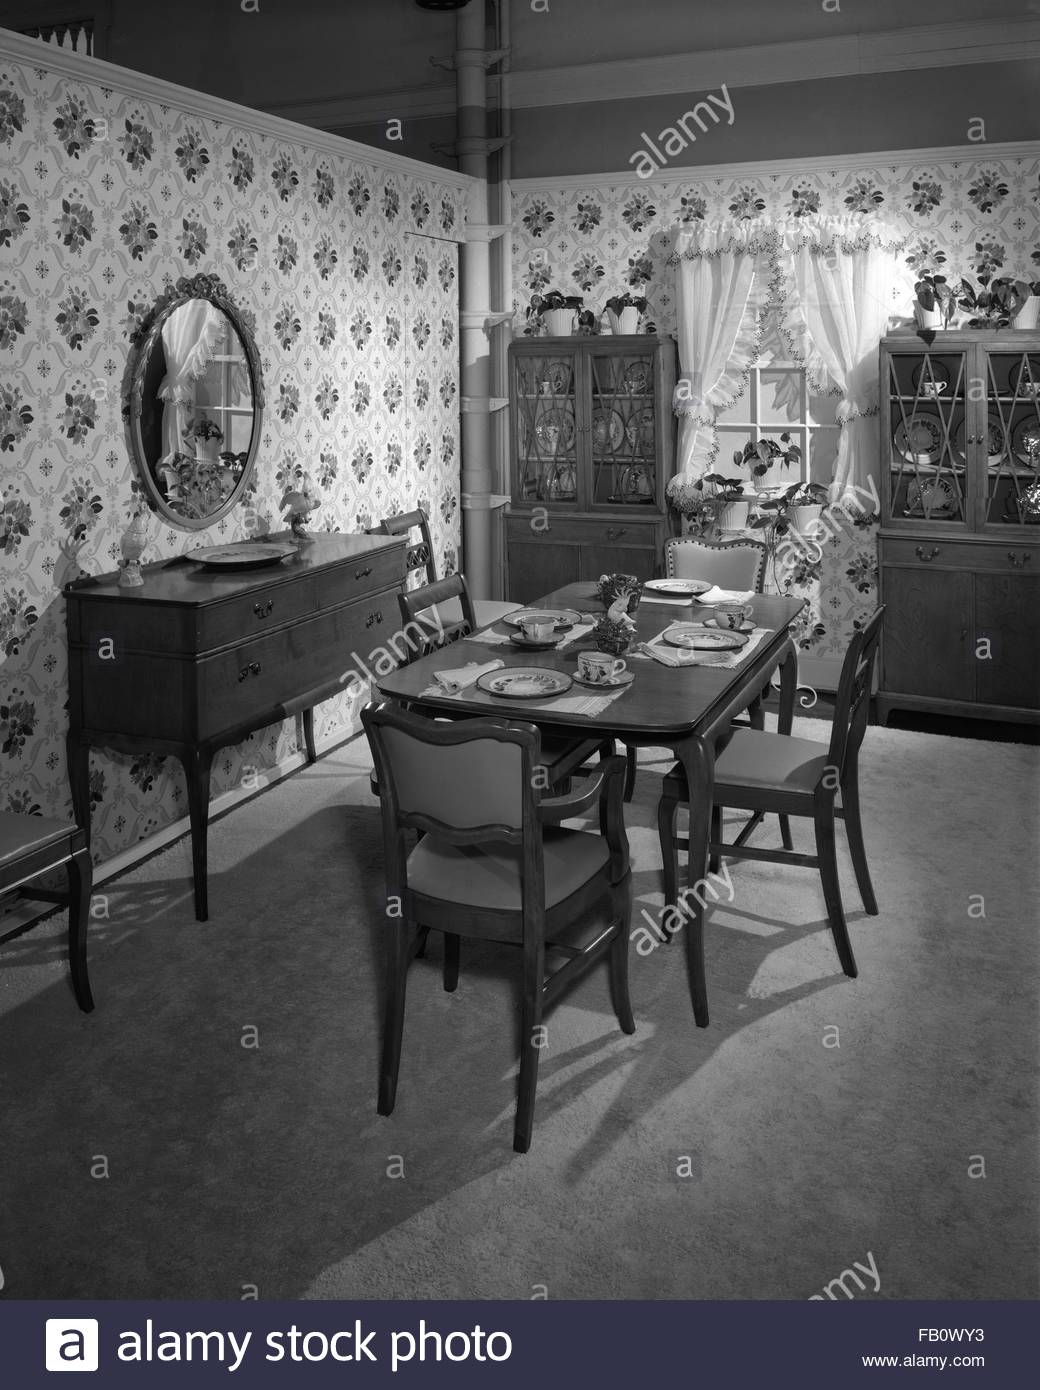 Highway 42 section of Marshall Field and Company furniture department, 1943 Feb. 15. Dining room. Stock Photo